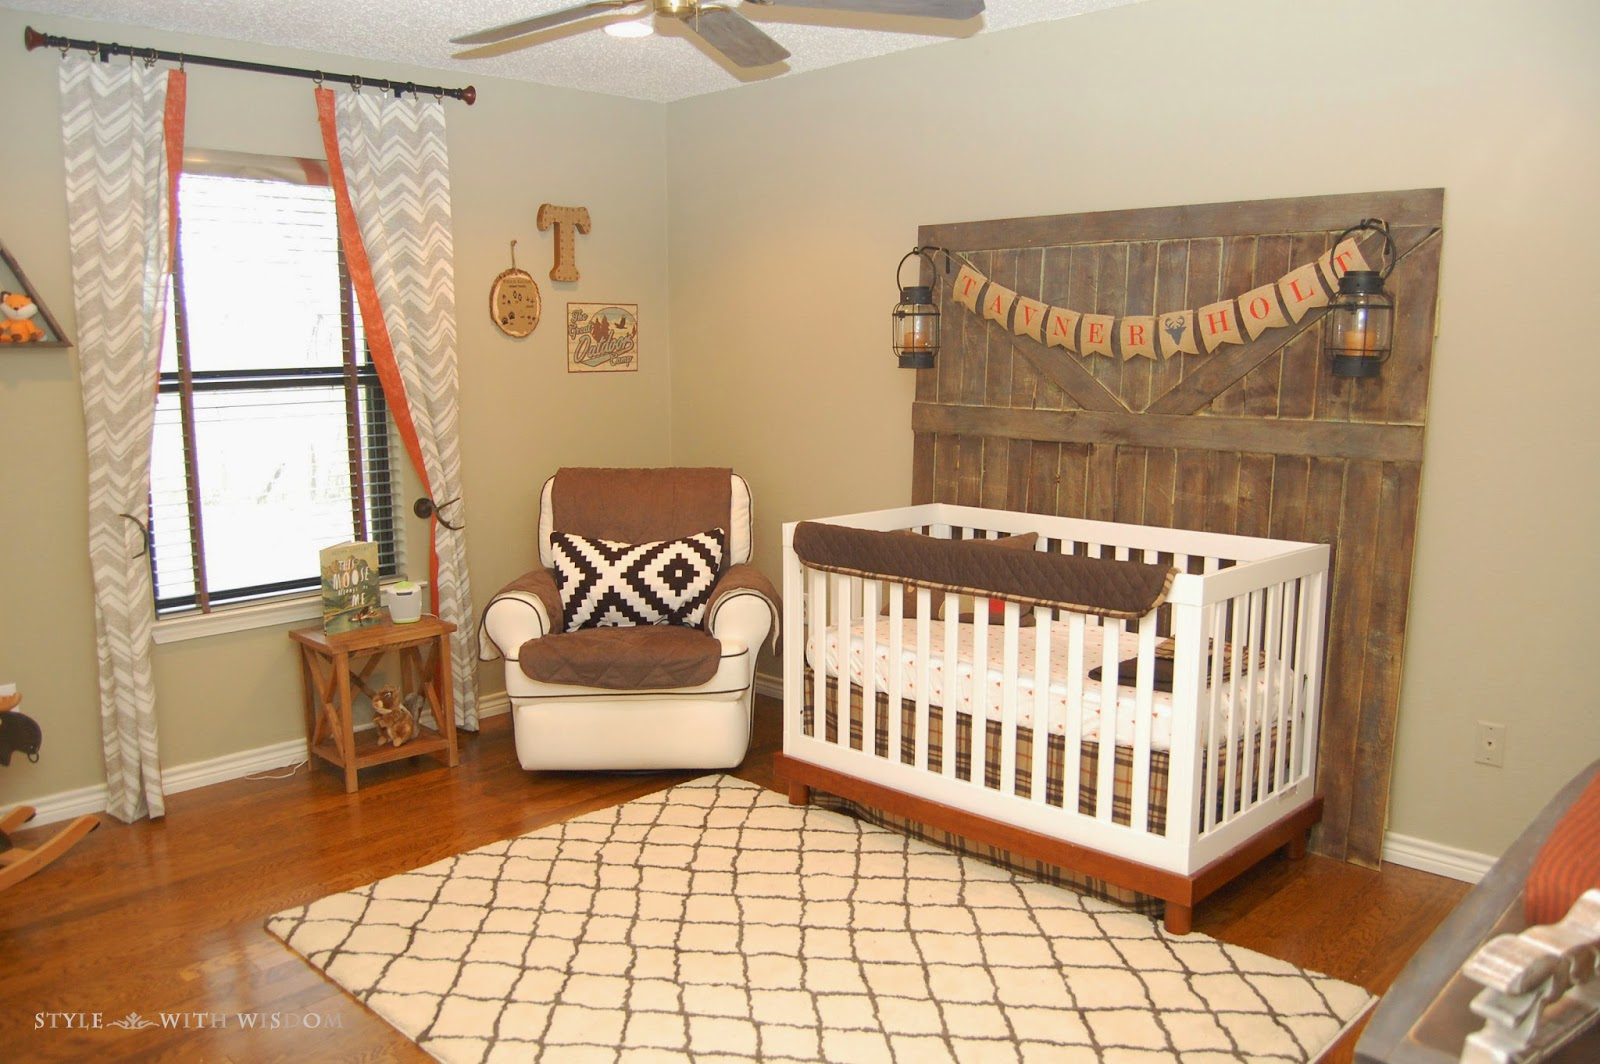 Style with Wisdom: A Woodland Nursery For Our Baby Boy!